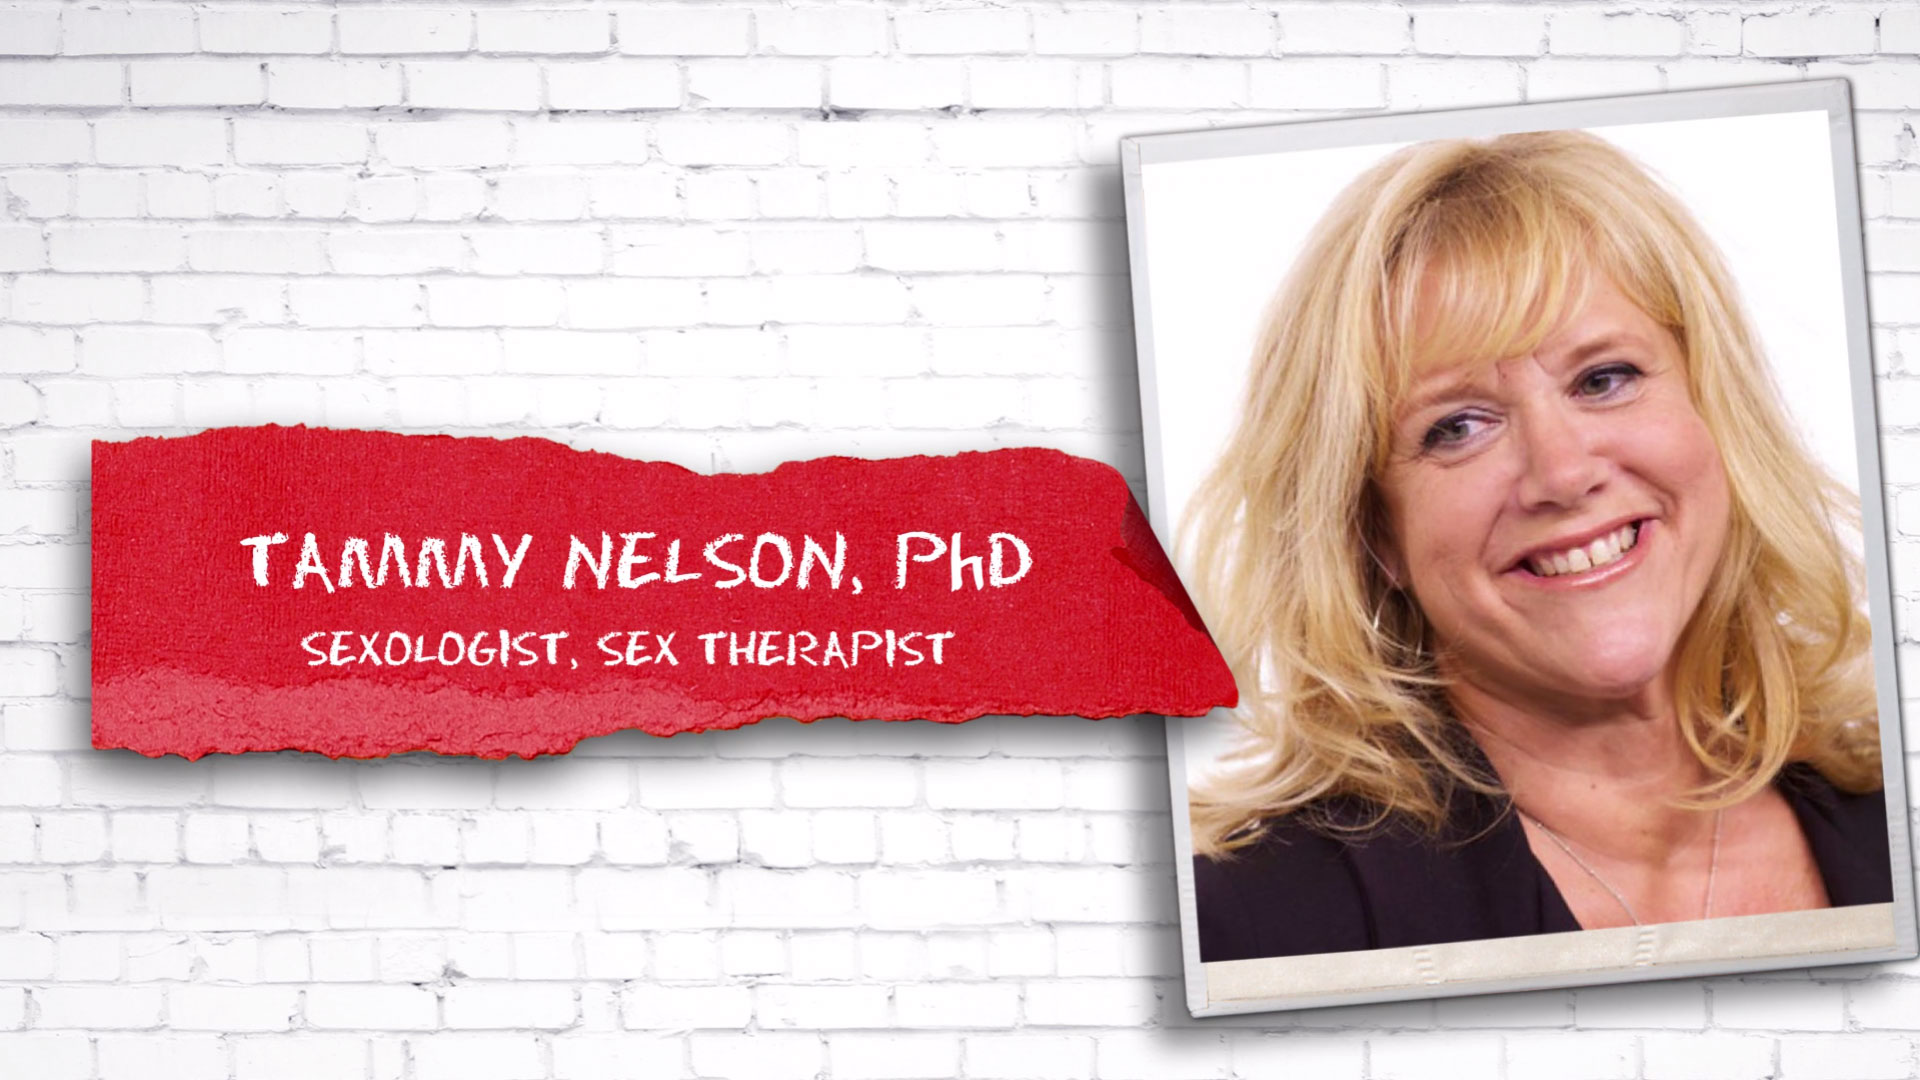 Full Interview with Tammy Nelson from sex life and relationships show - uncut.